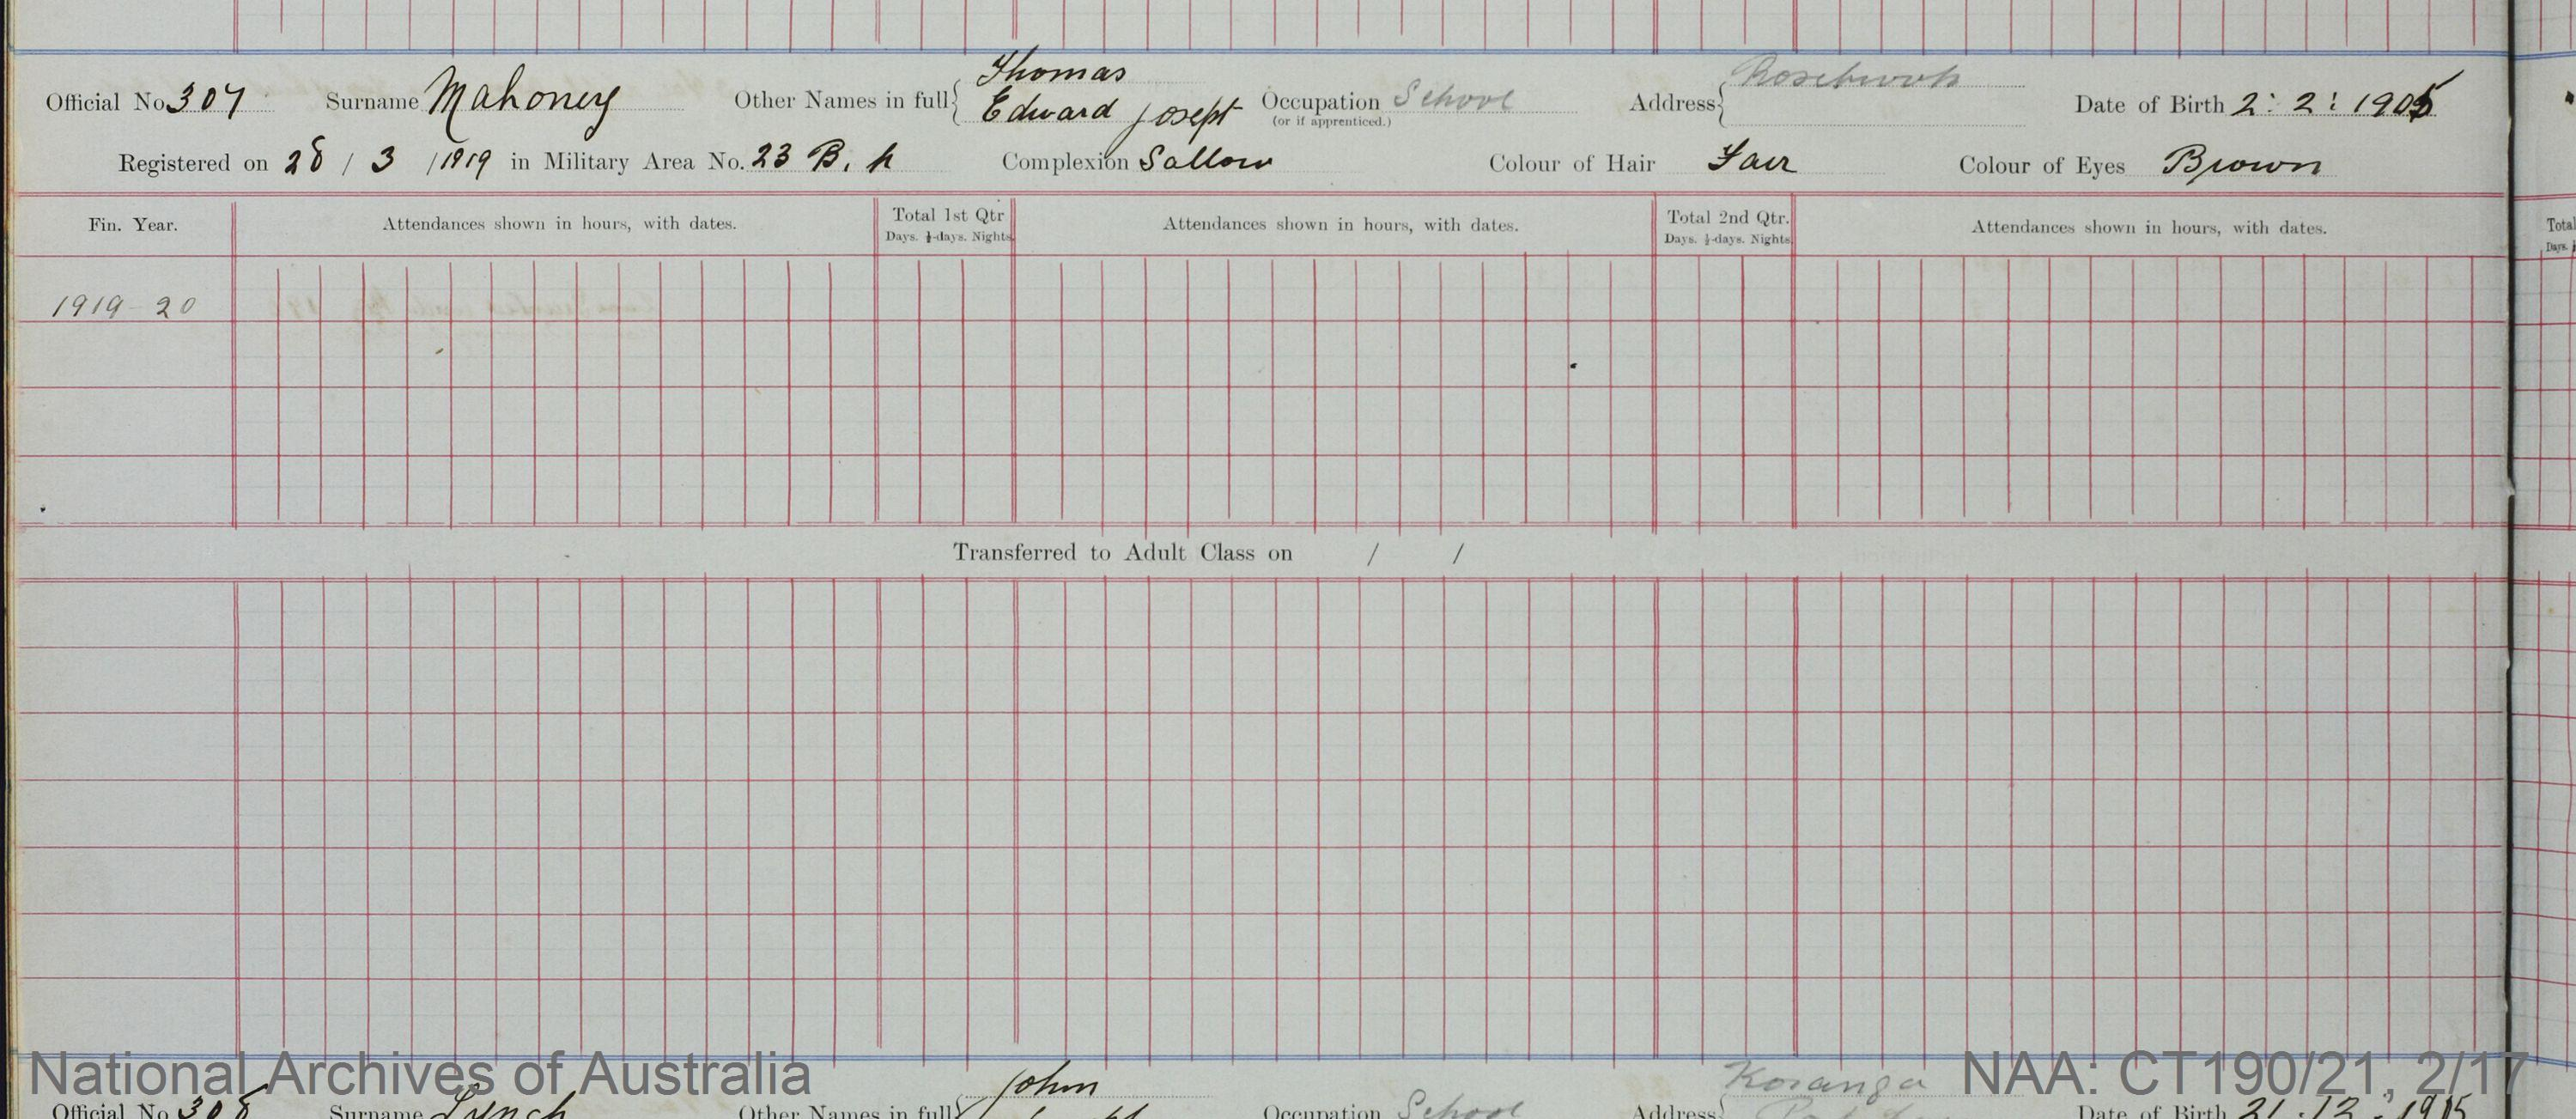 SURNAME - MAHONEY;  GIVEN NAME(S) - Thomas Edward Joseph;  OFFICIAL NUMBER - 307;  DATE OF BIRTH - 2 February 1905;  PLACE OF BIRTH - [Unknown];  NEXT OF KIN - [Unknown] ;  SERVICE/STATION - Port Fairy;  REGISTRATION DATE - 28 March 1919